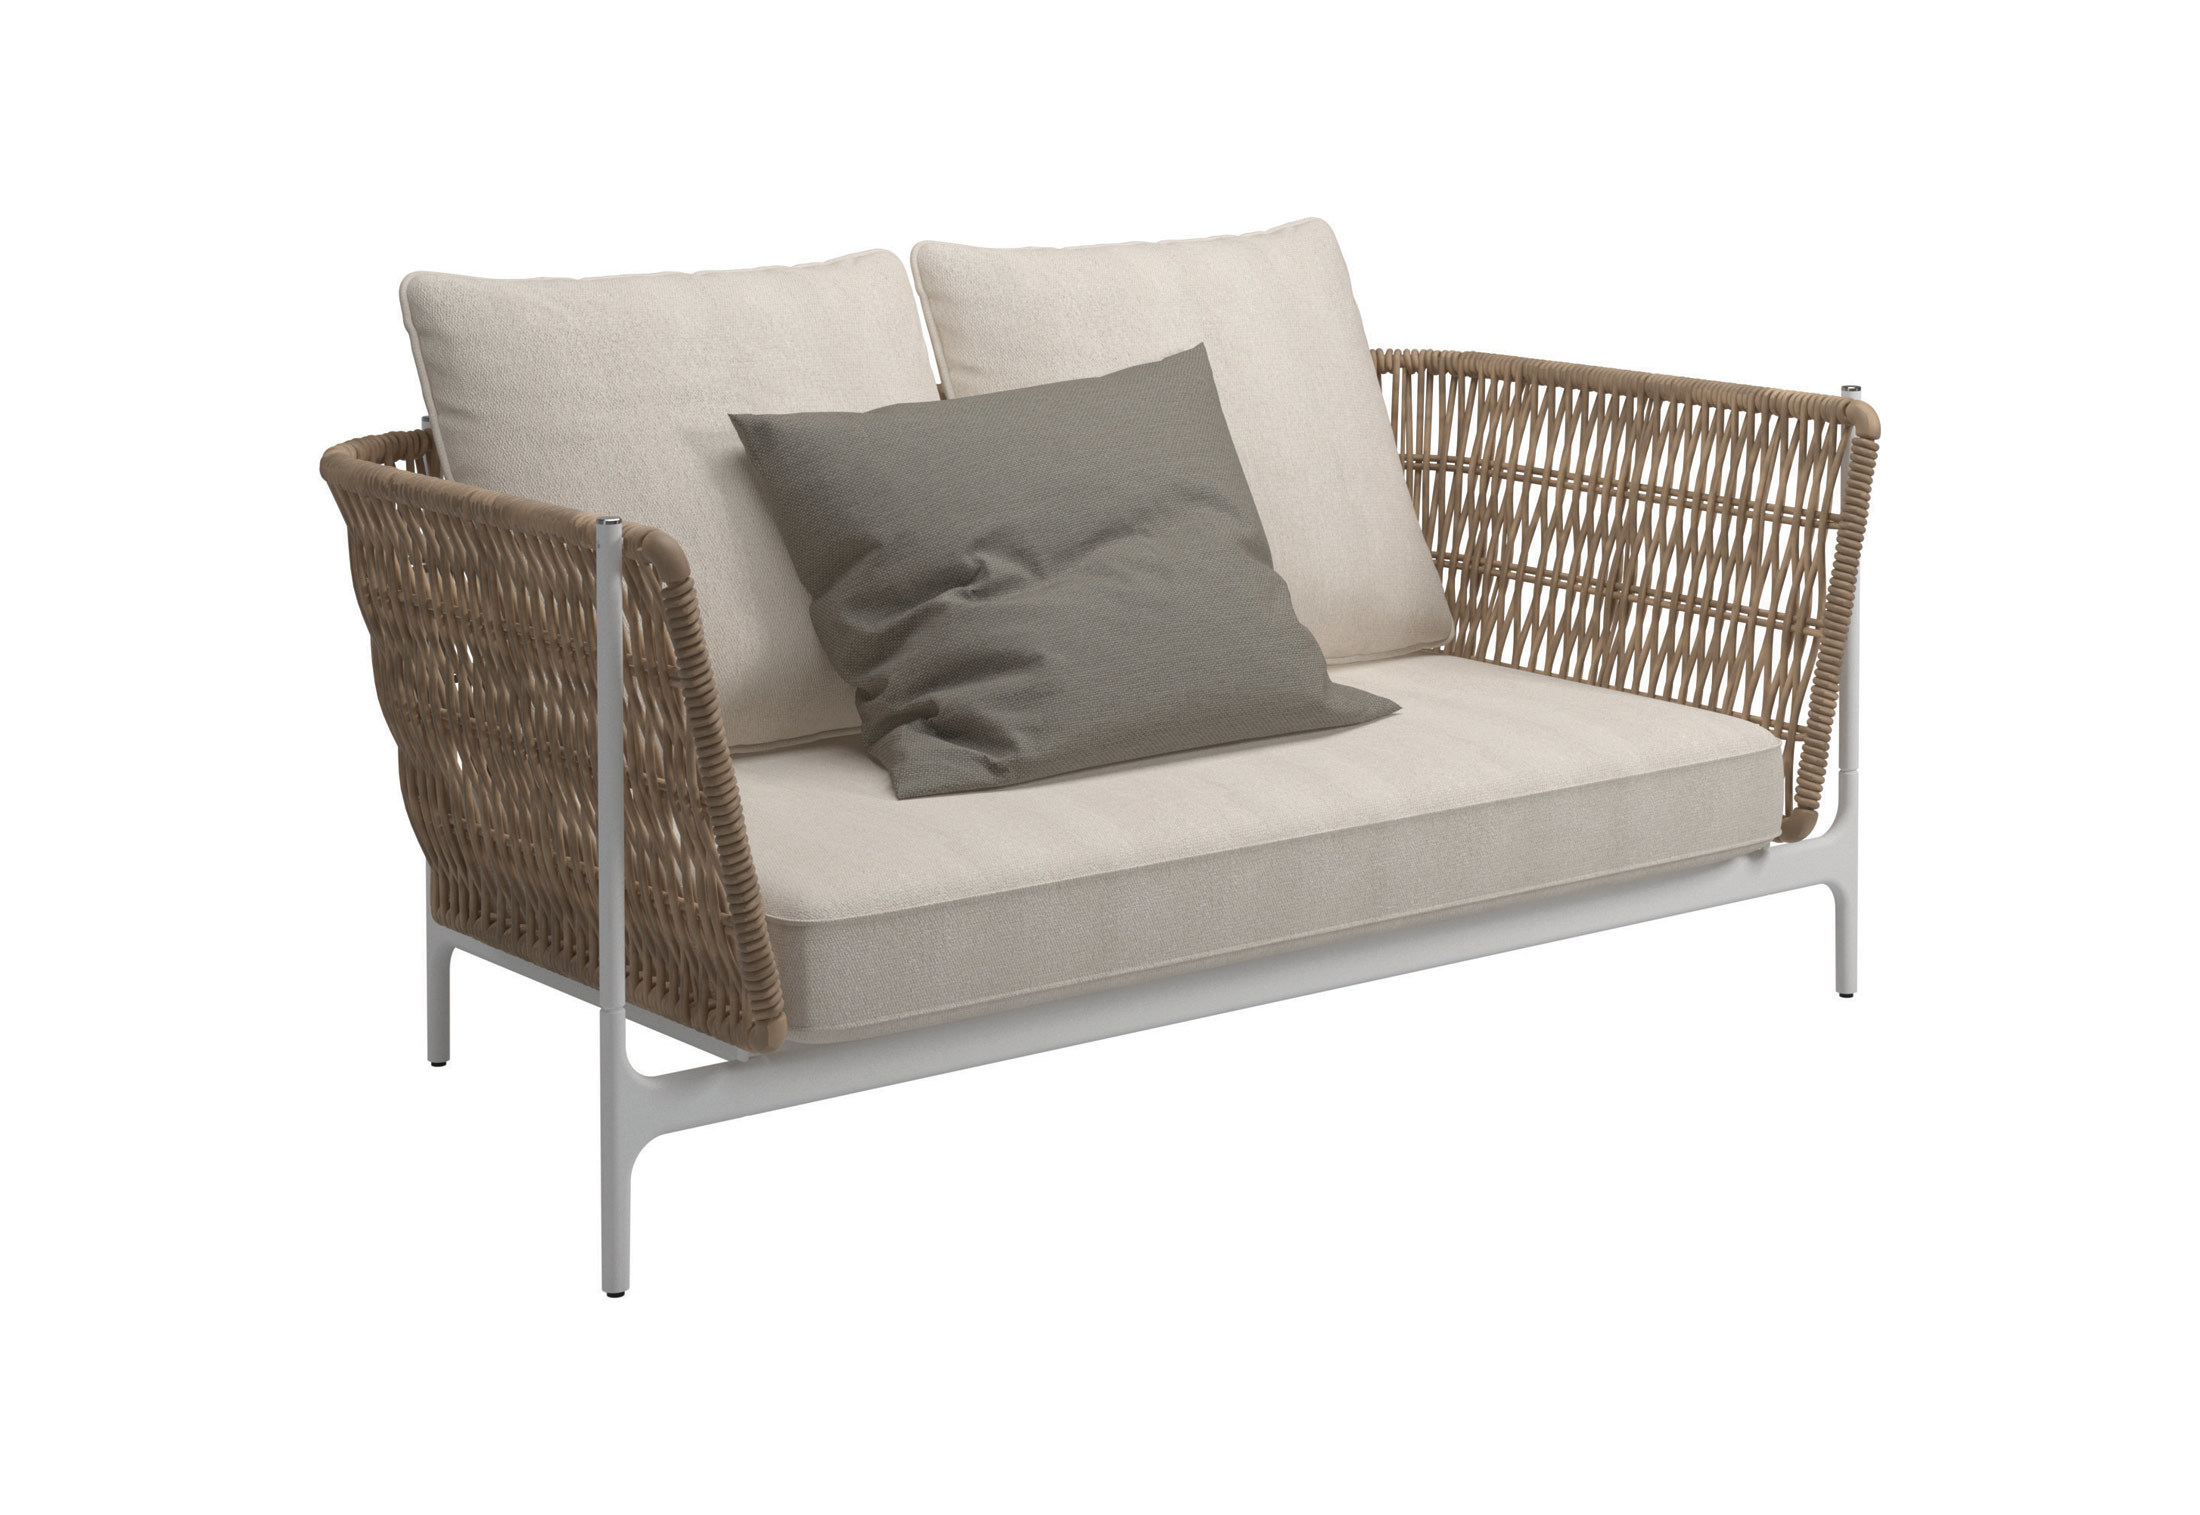 Grand Weave Sofa Zweisitzer Von Gloster Furniture Stylepark